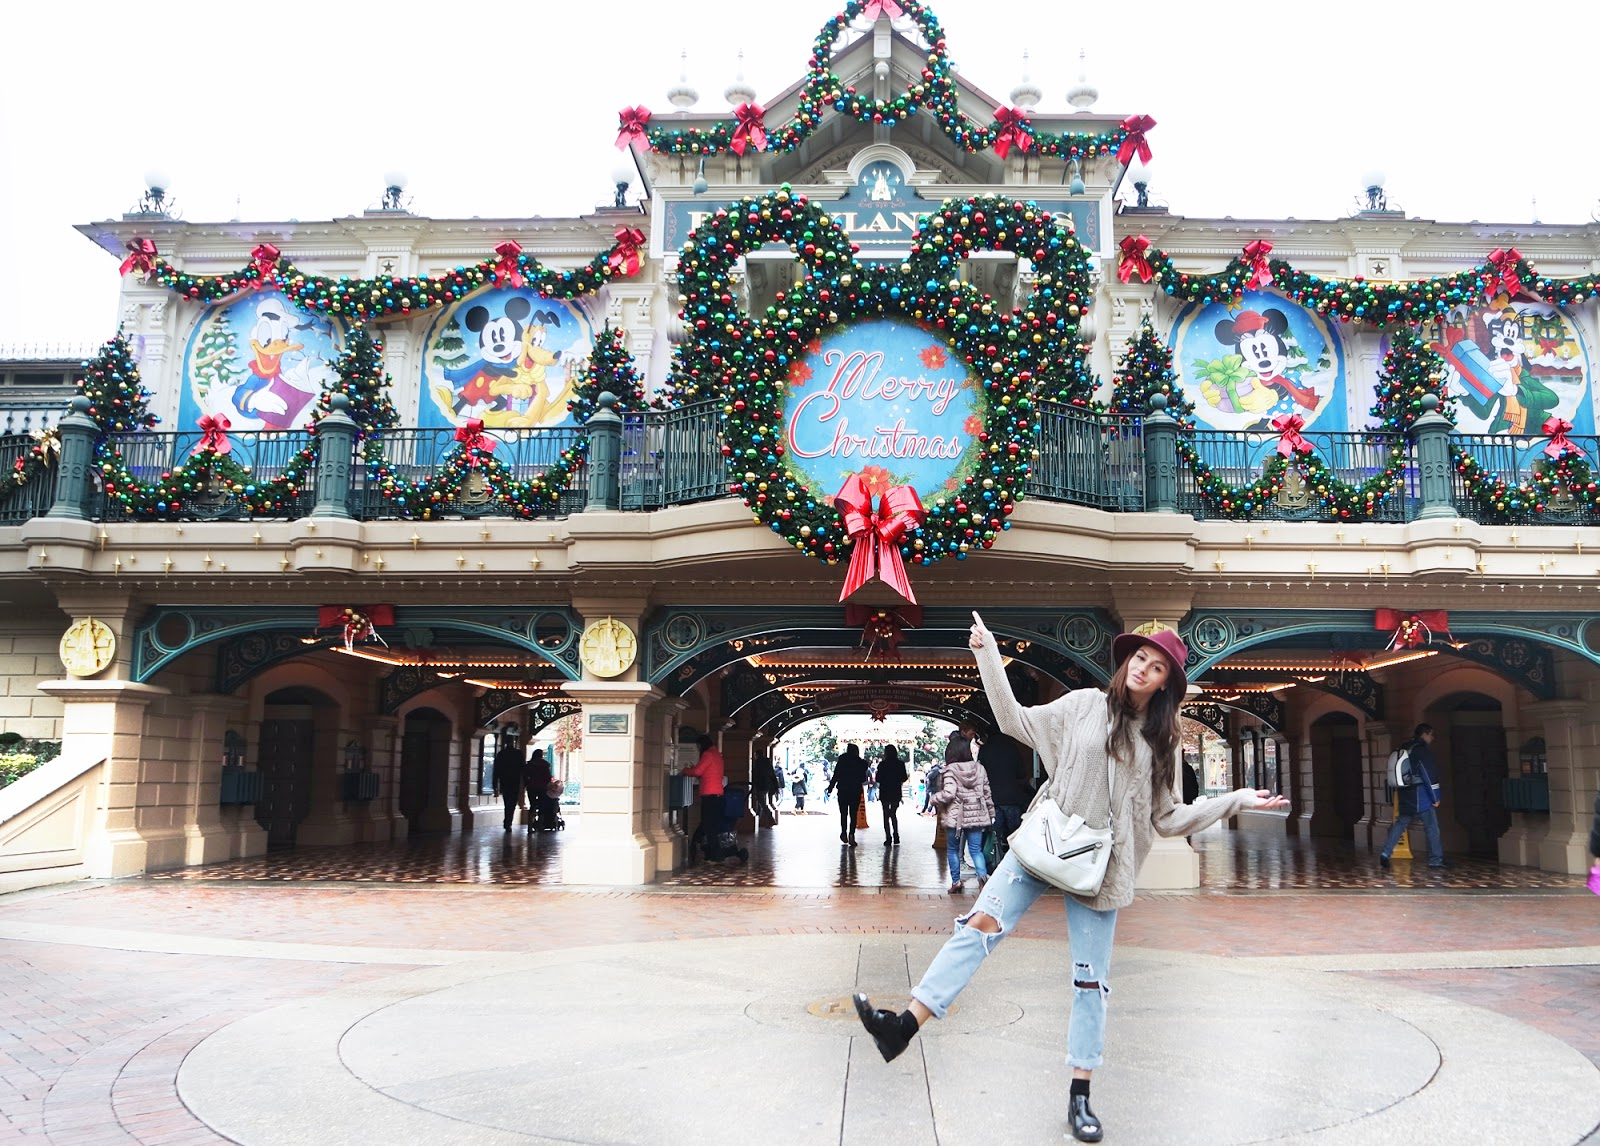 Christmas fun at Disneyland Paris!